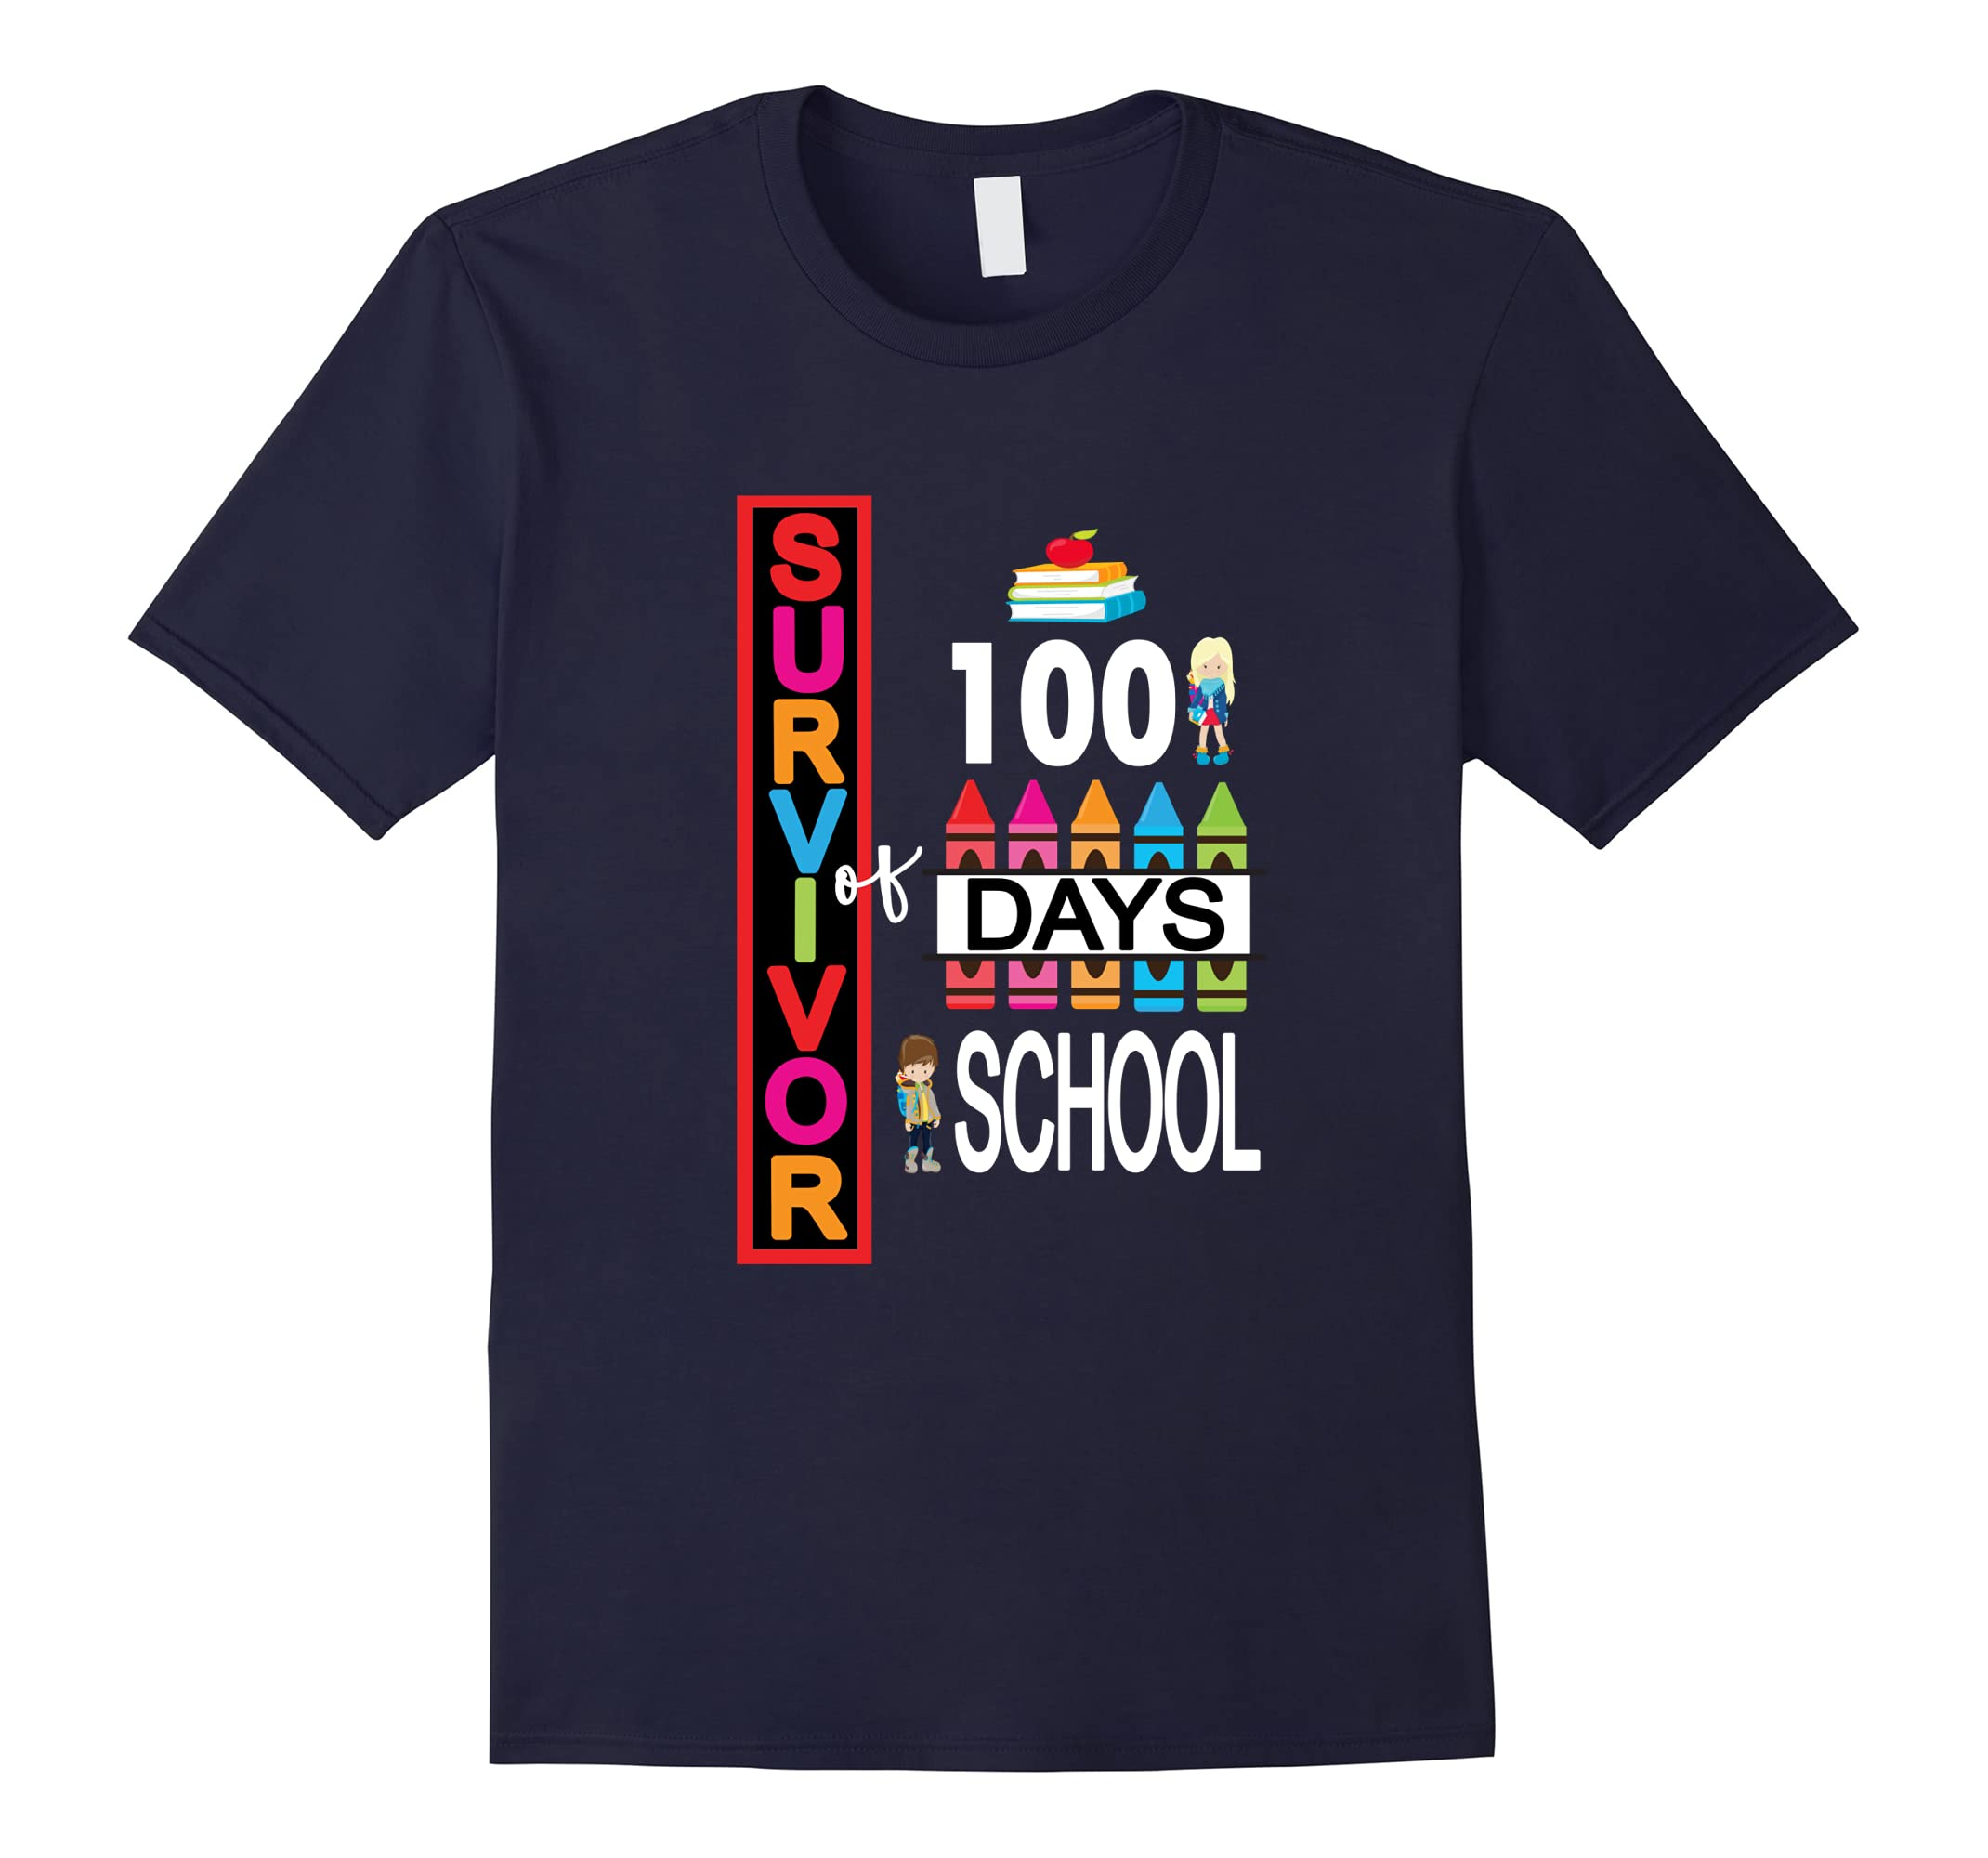 100 Days Of School Shirt For Teachers & Kids Survivor-RT